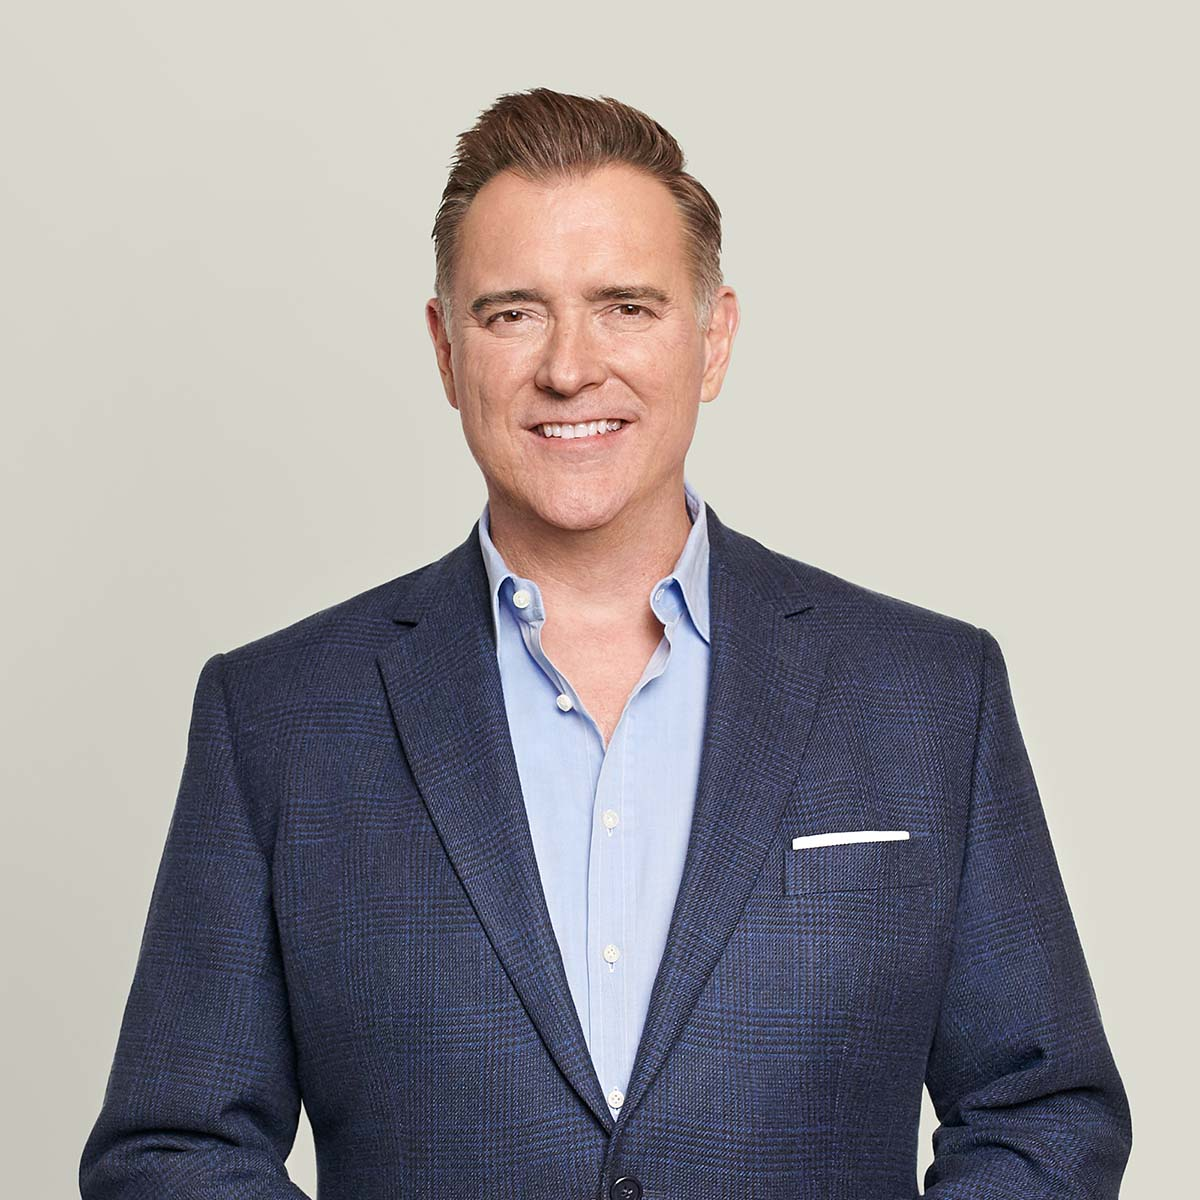 Cory Couts, former Global President, Kao Salon Division